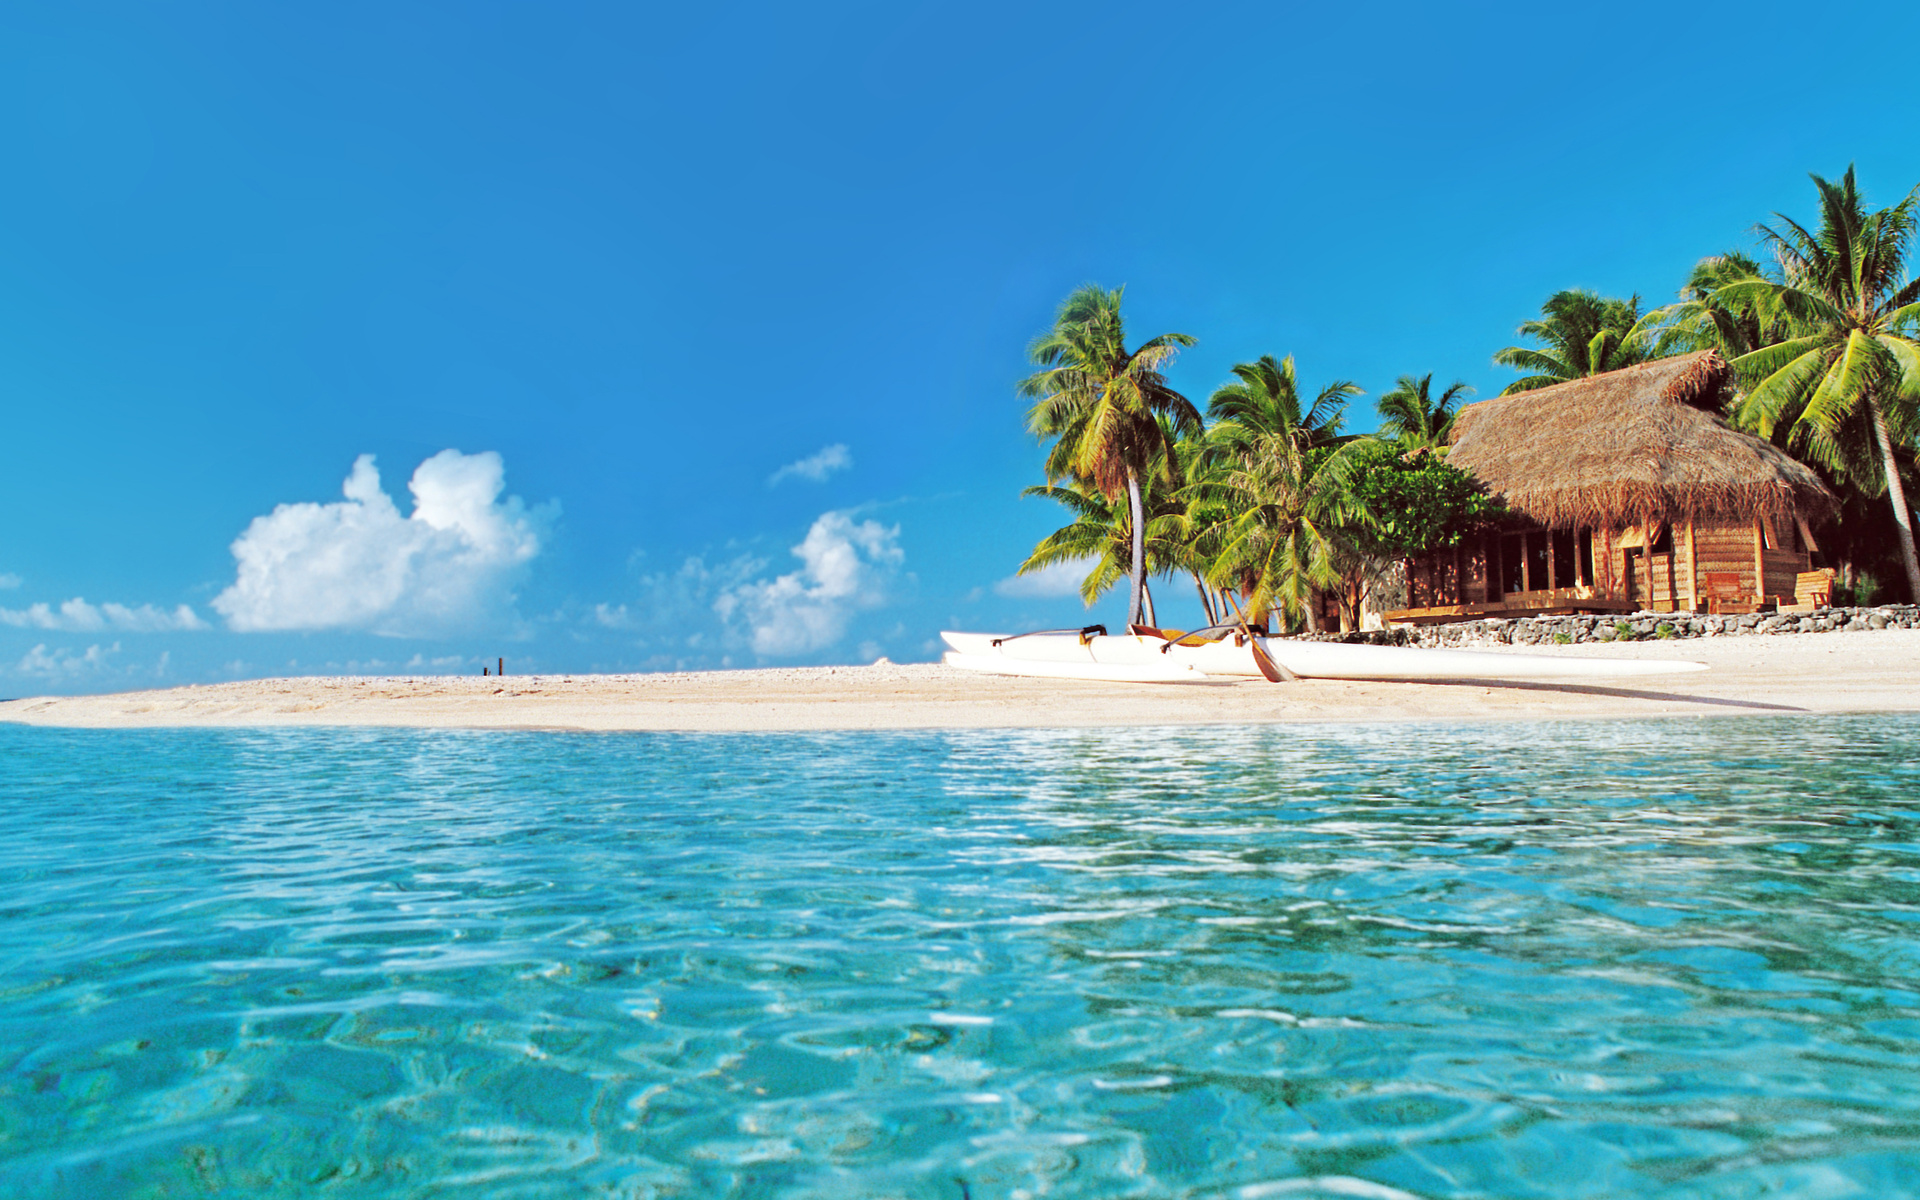 Hut on Tropical Beach HD Wallpaper | Background Image | 1920x1200 | ID:673731 - Wallpaper Abyss